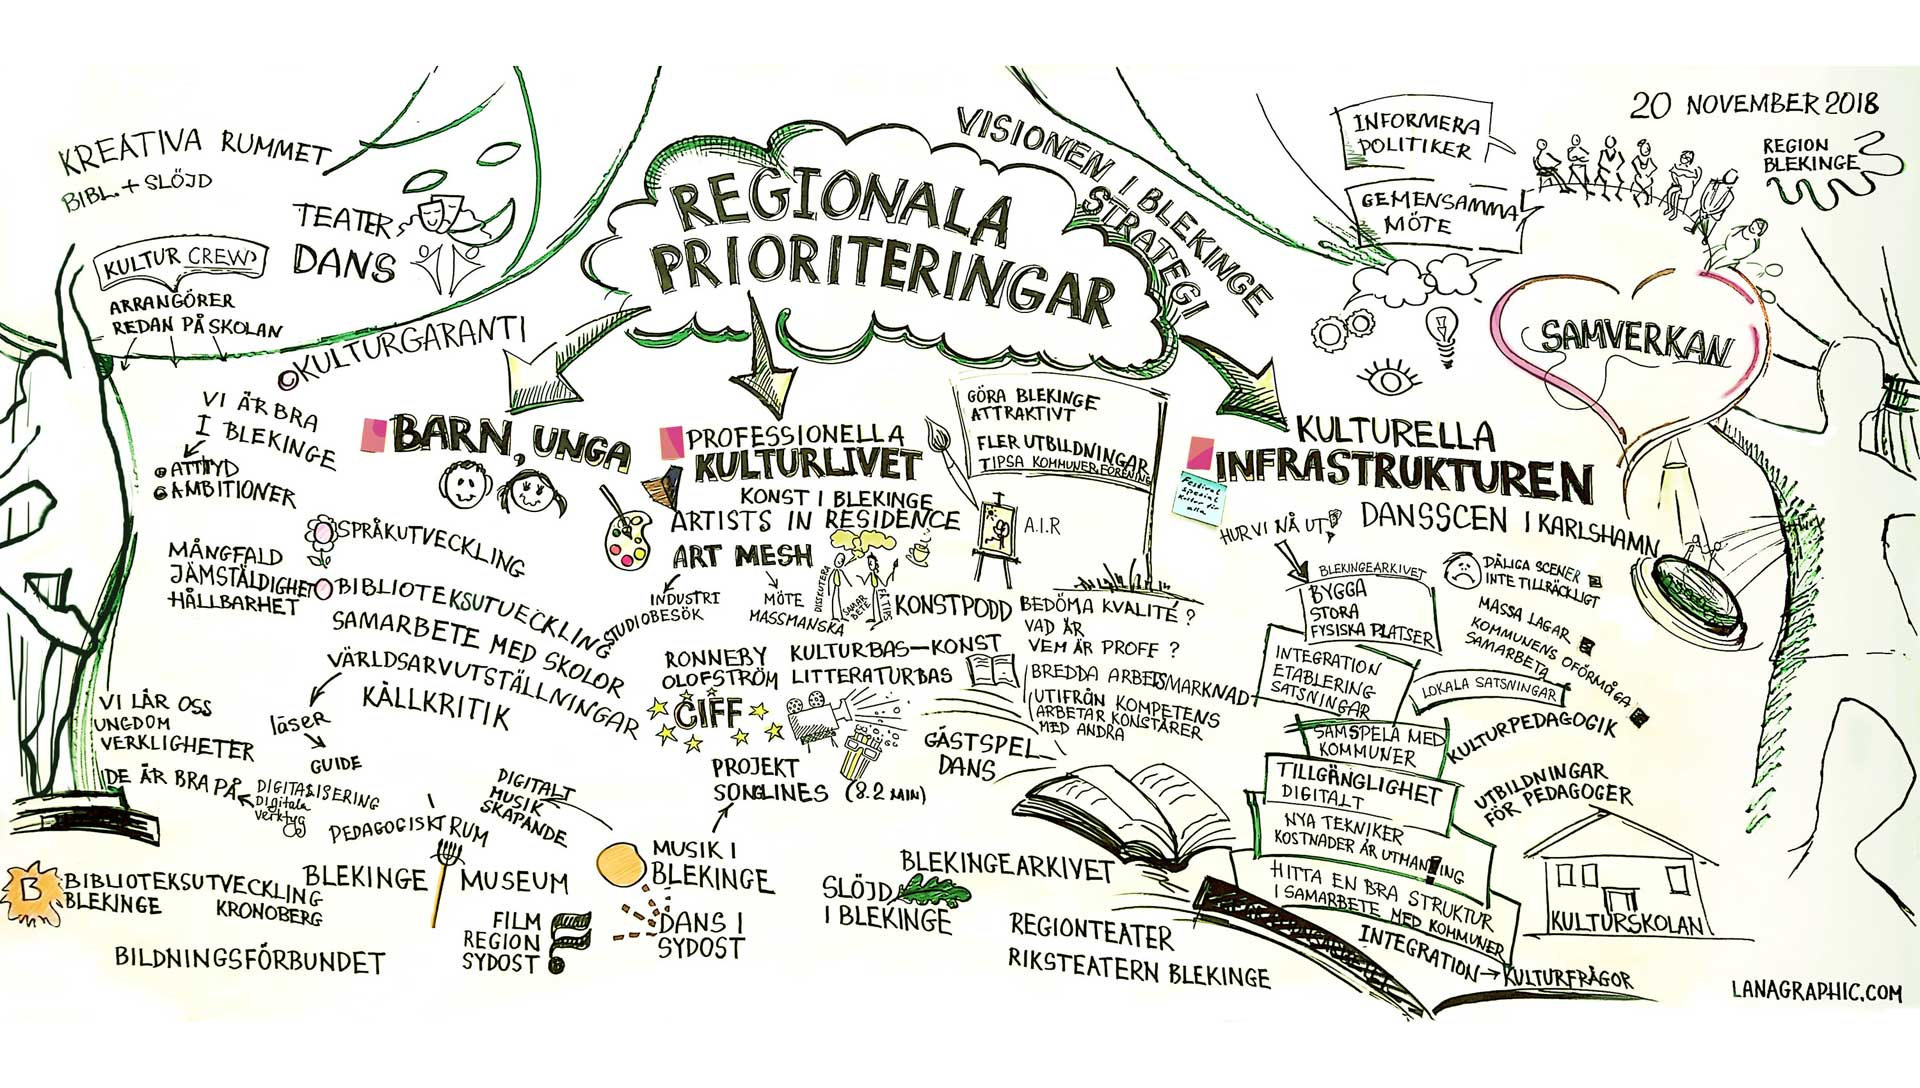 Region-Blekinge-workshop-2018-graphic-scribing-by-Lanagraphic